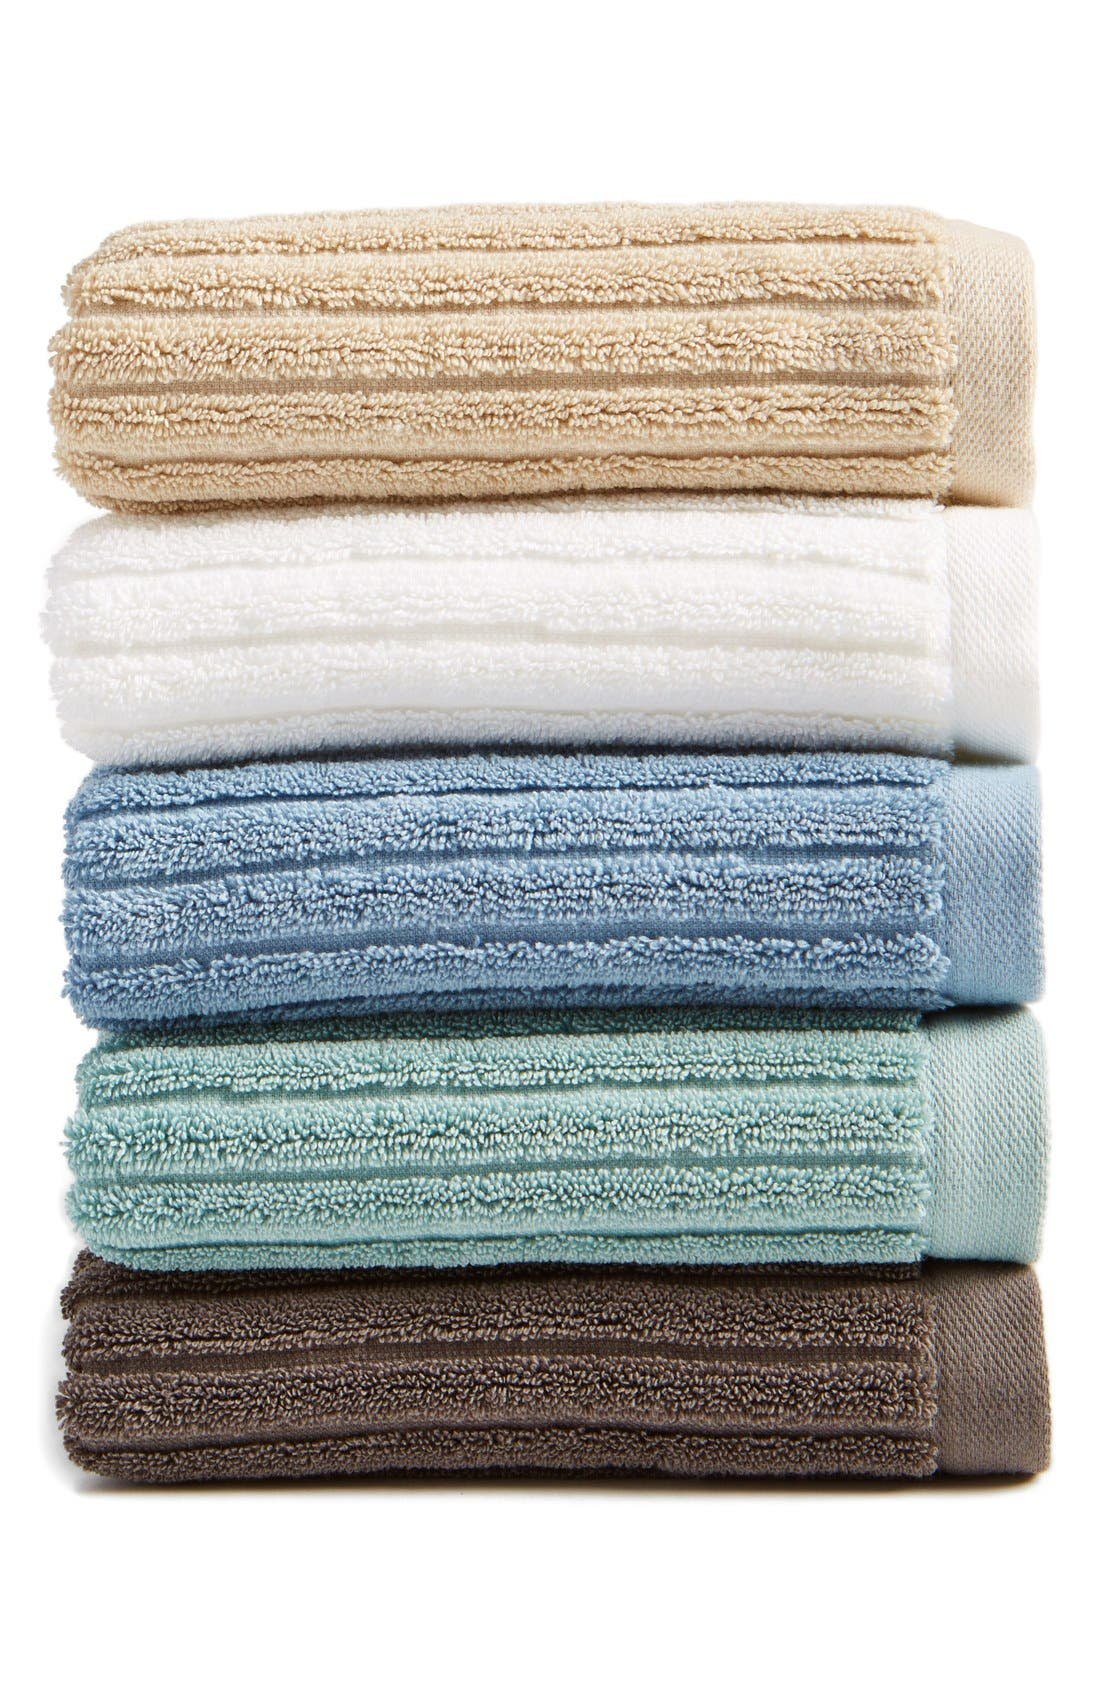 Alternate Image 1 Selected - Nordstrom at Home 'Modern Rib' Hand Towel (2 for $24)